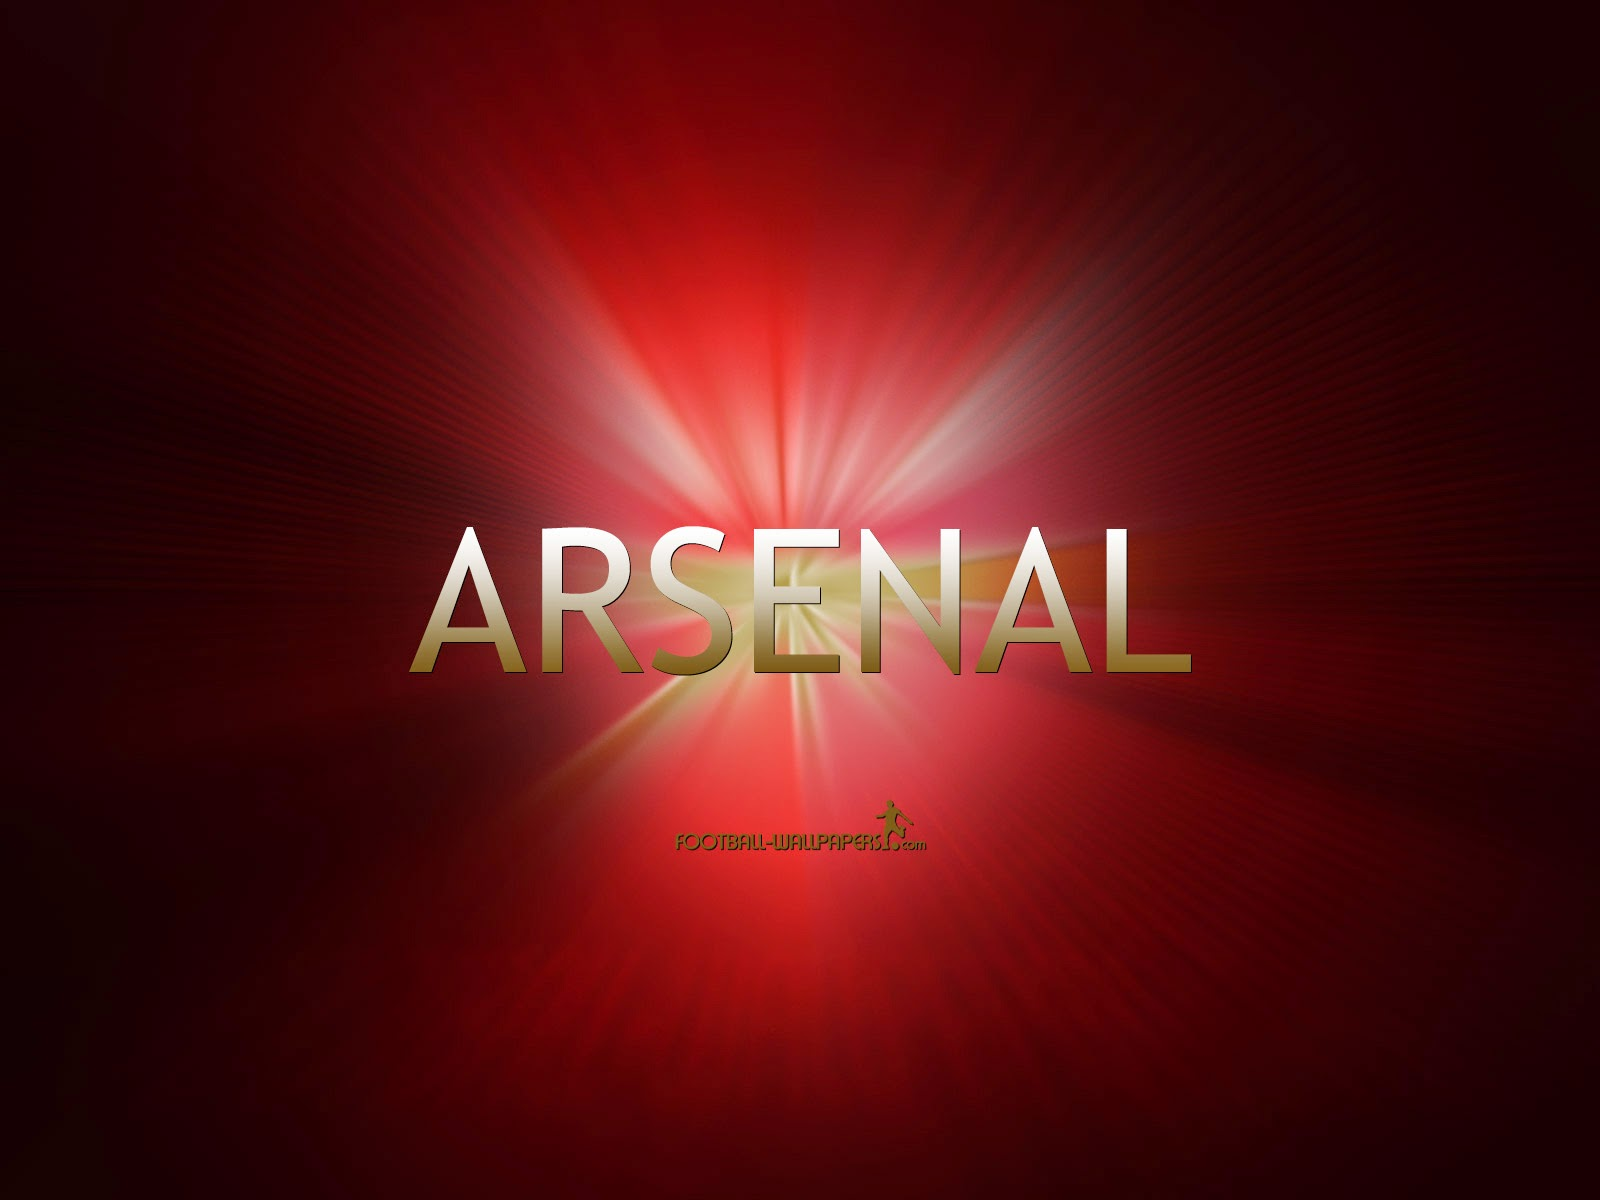 Download arsenal wallpapers in hd for desktop or gadget free arsenal wallpapers voltagebd Gallery